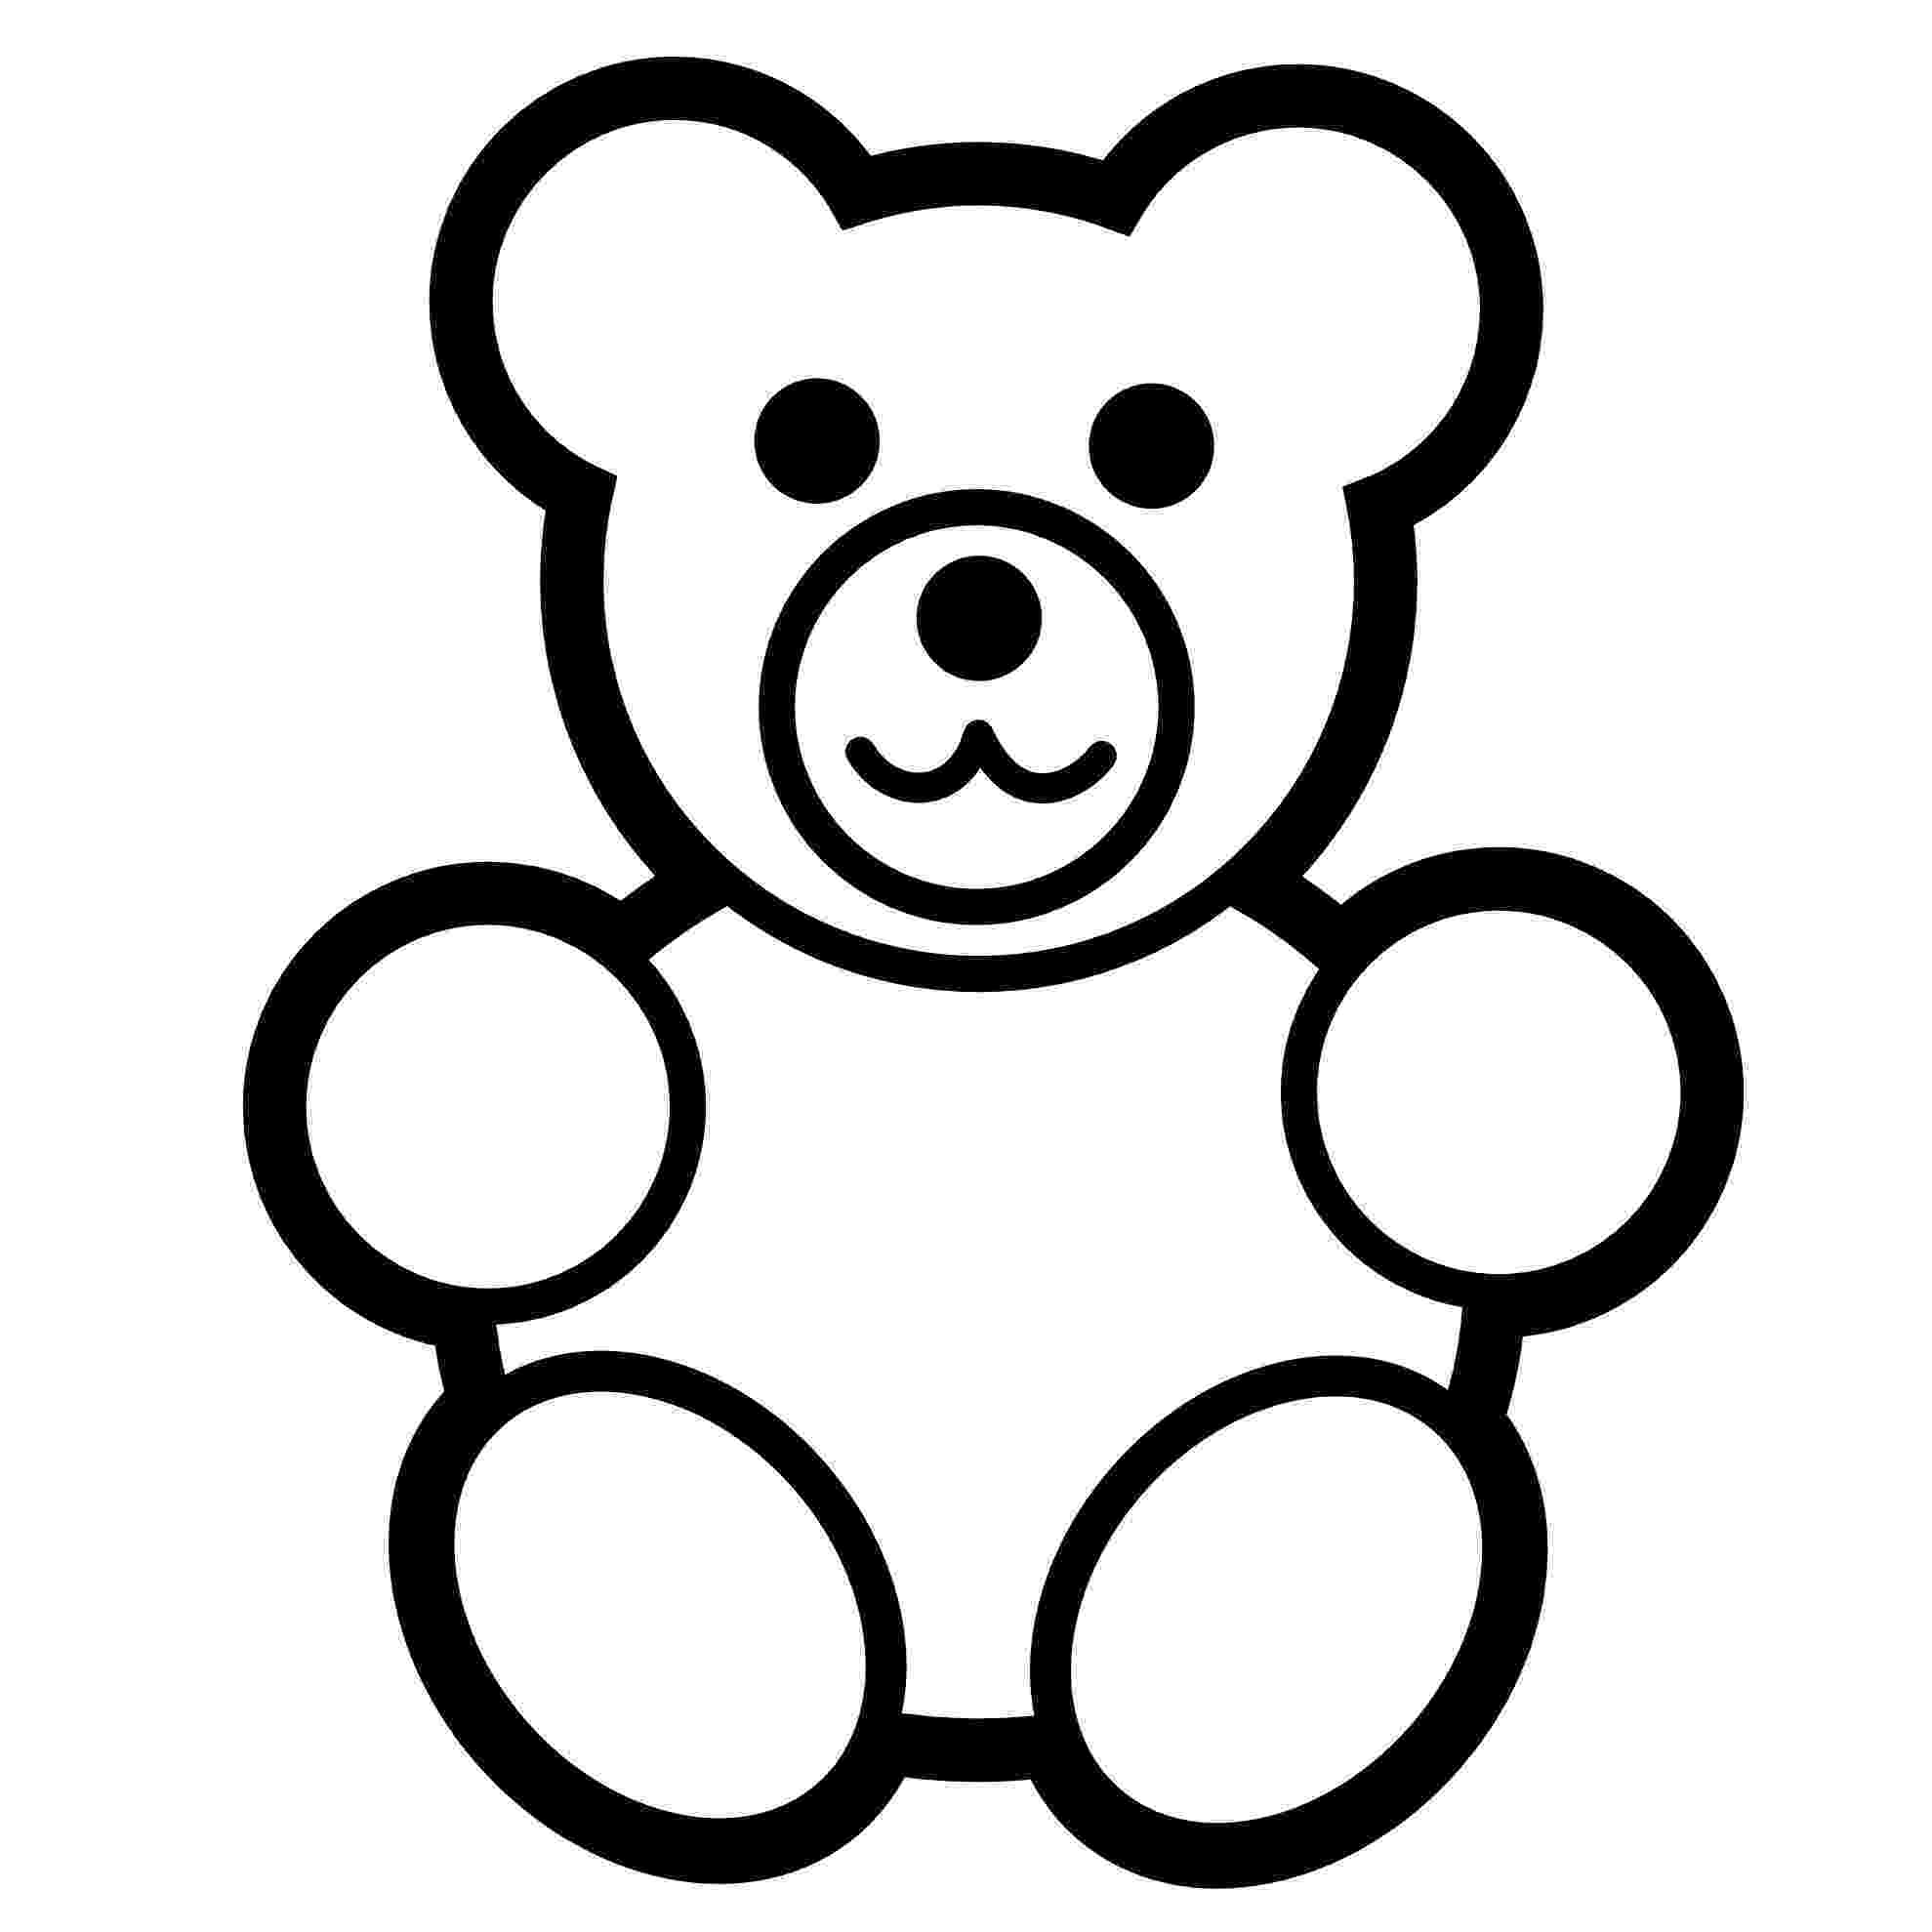 teddy to colour free printable teddy bear coloring pages for kids teddy to colour